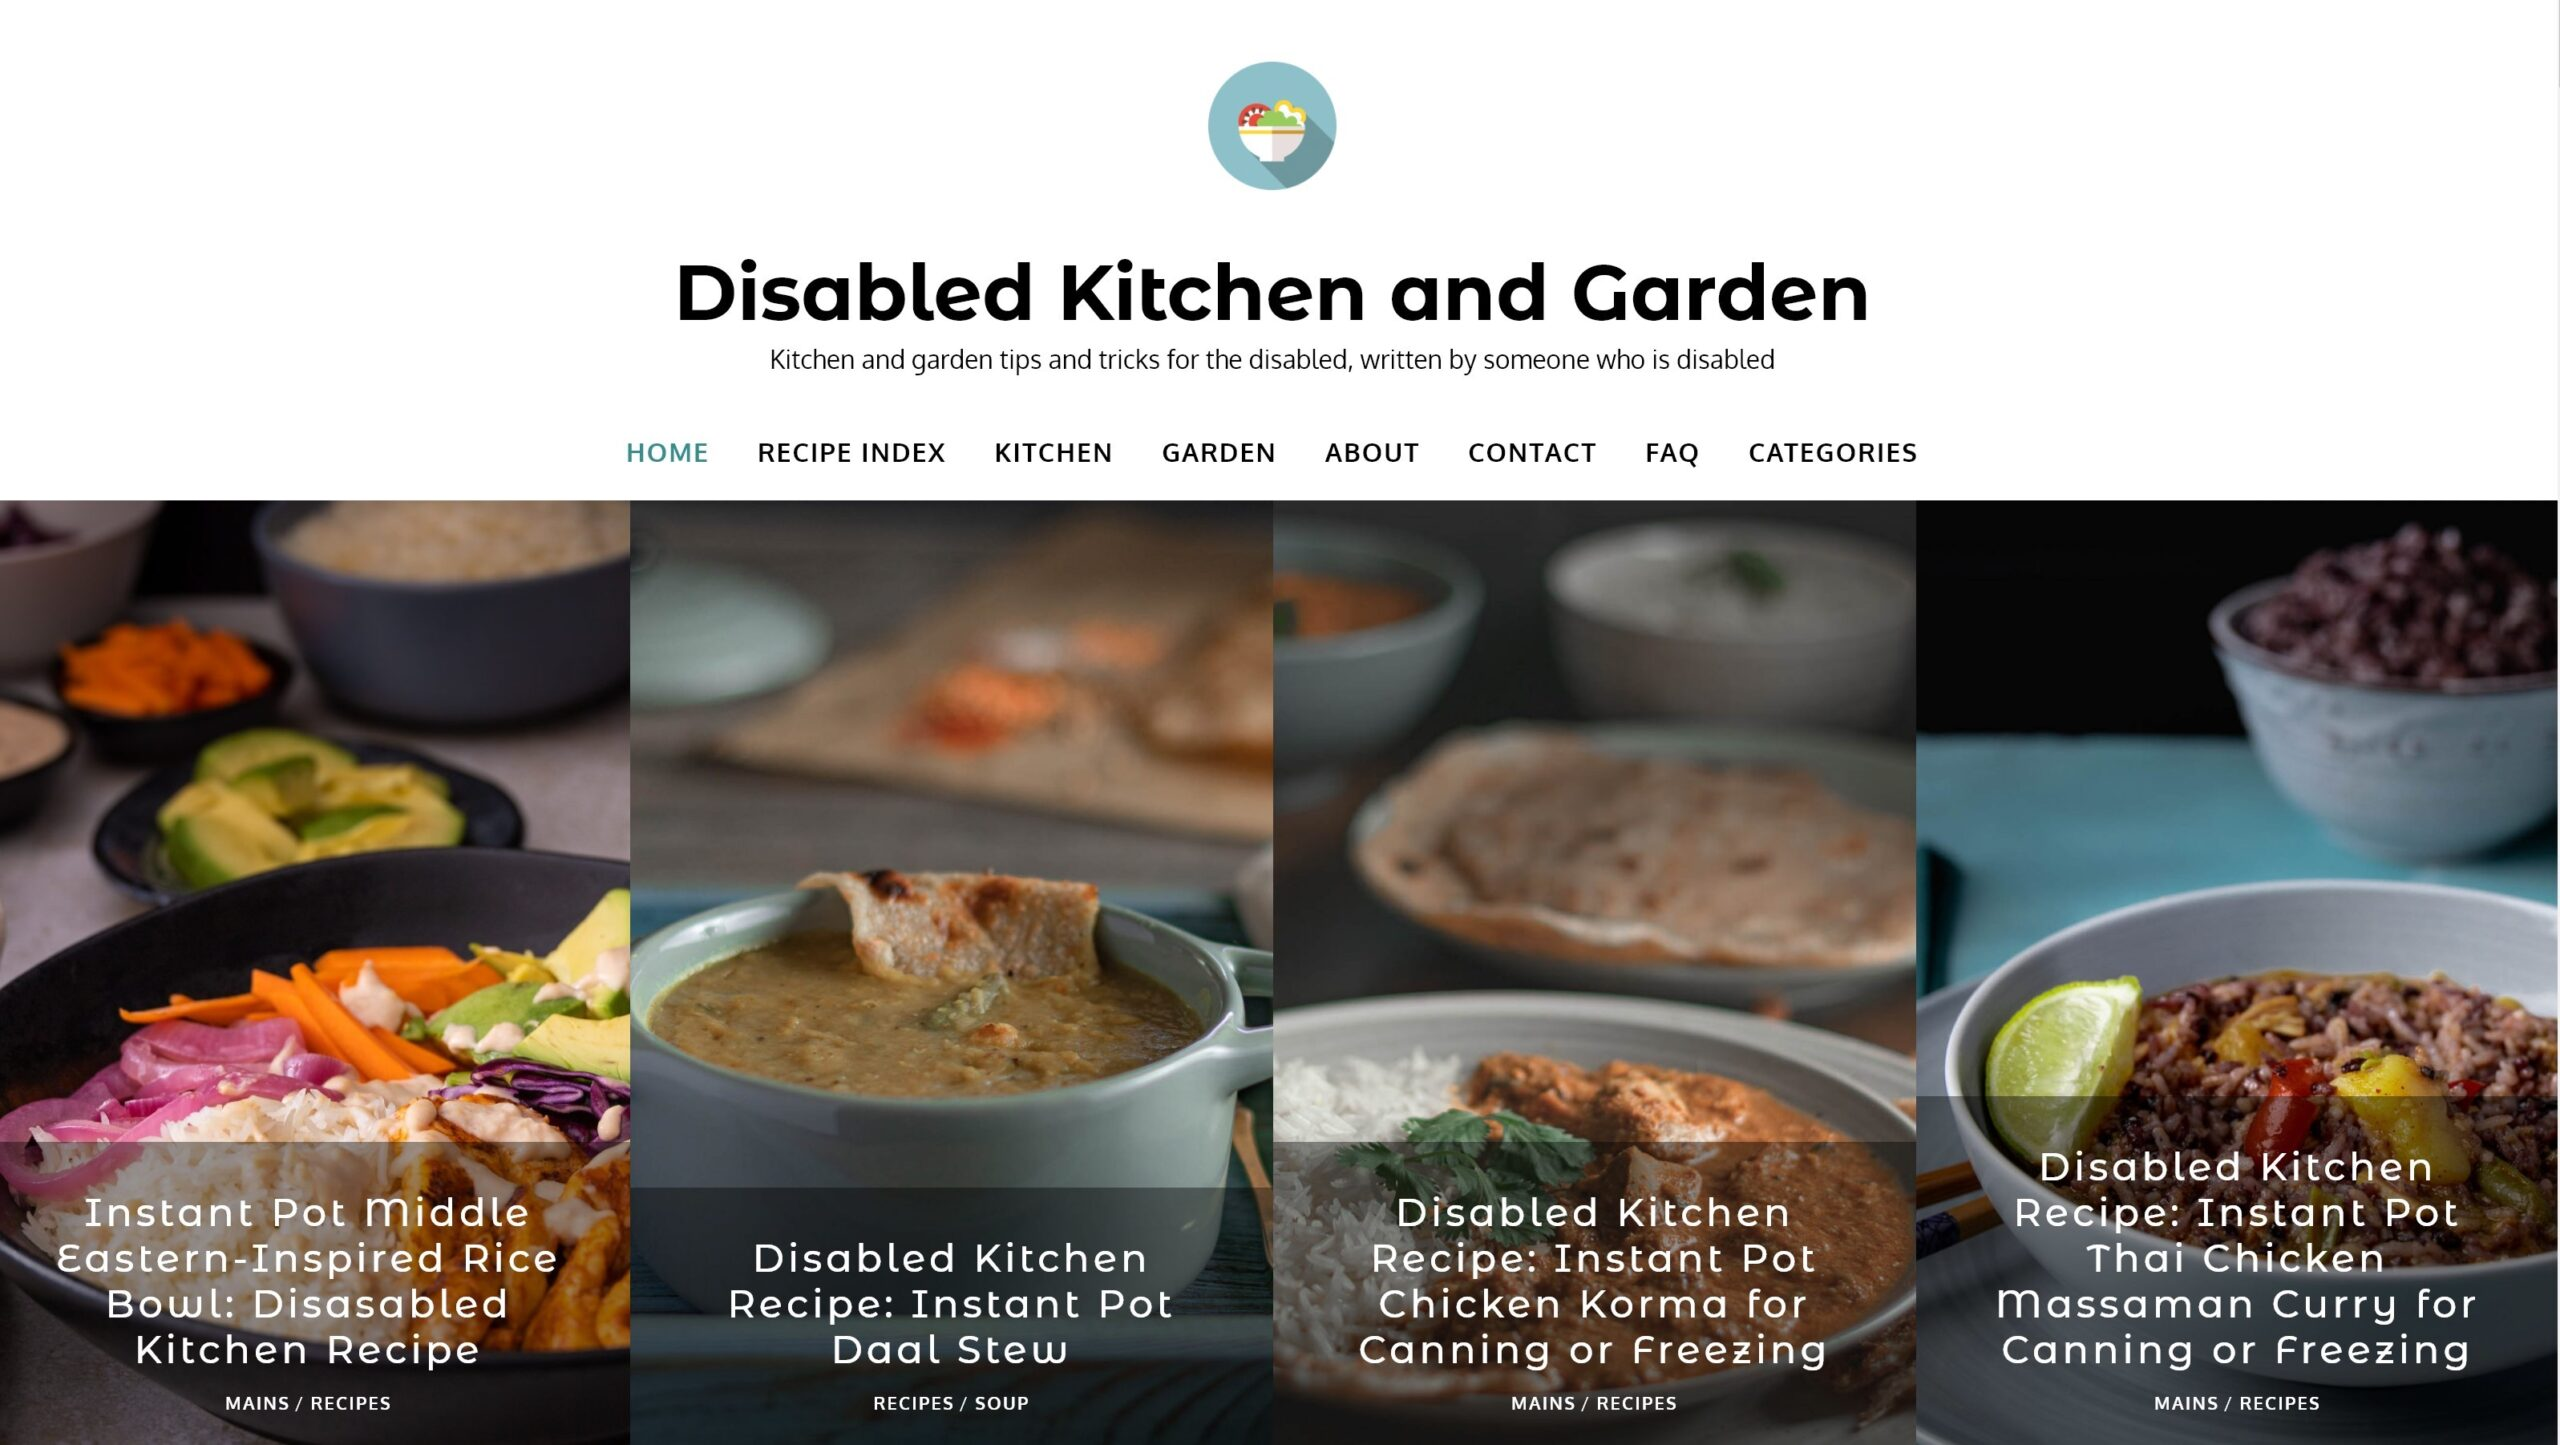 Project; Disabled Kitchen and Garden